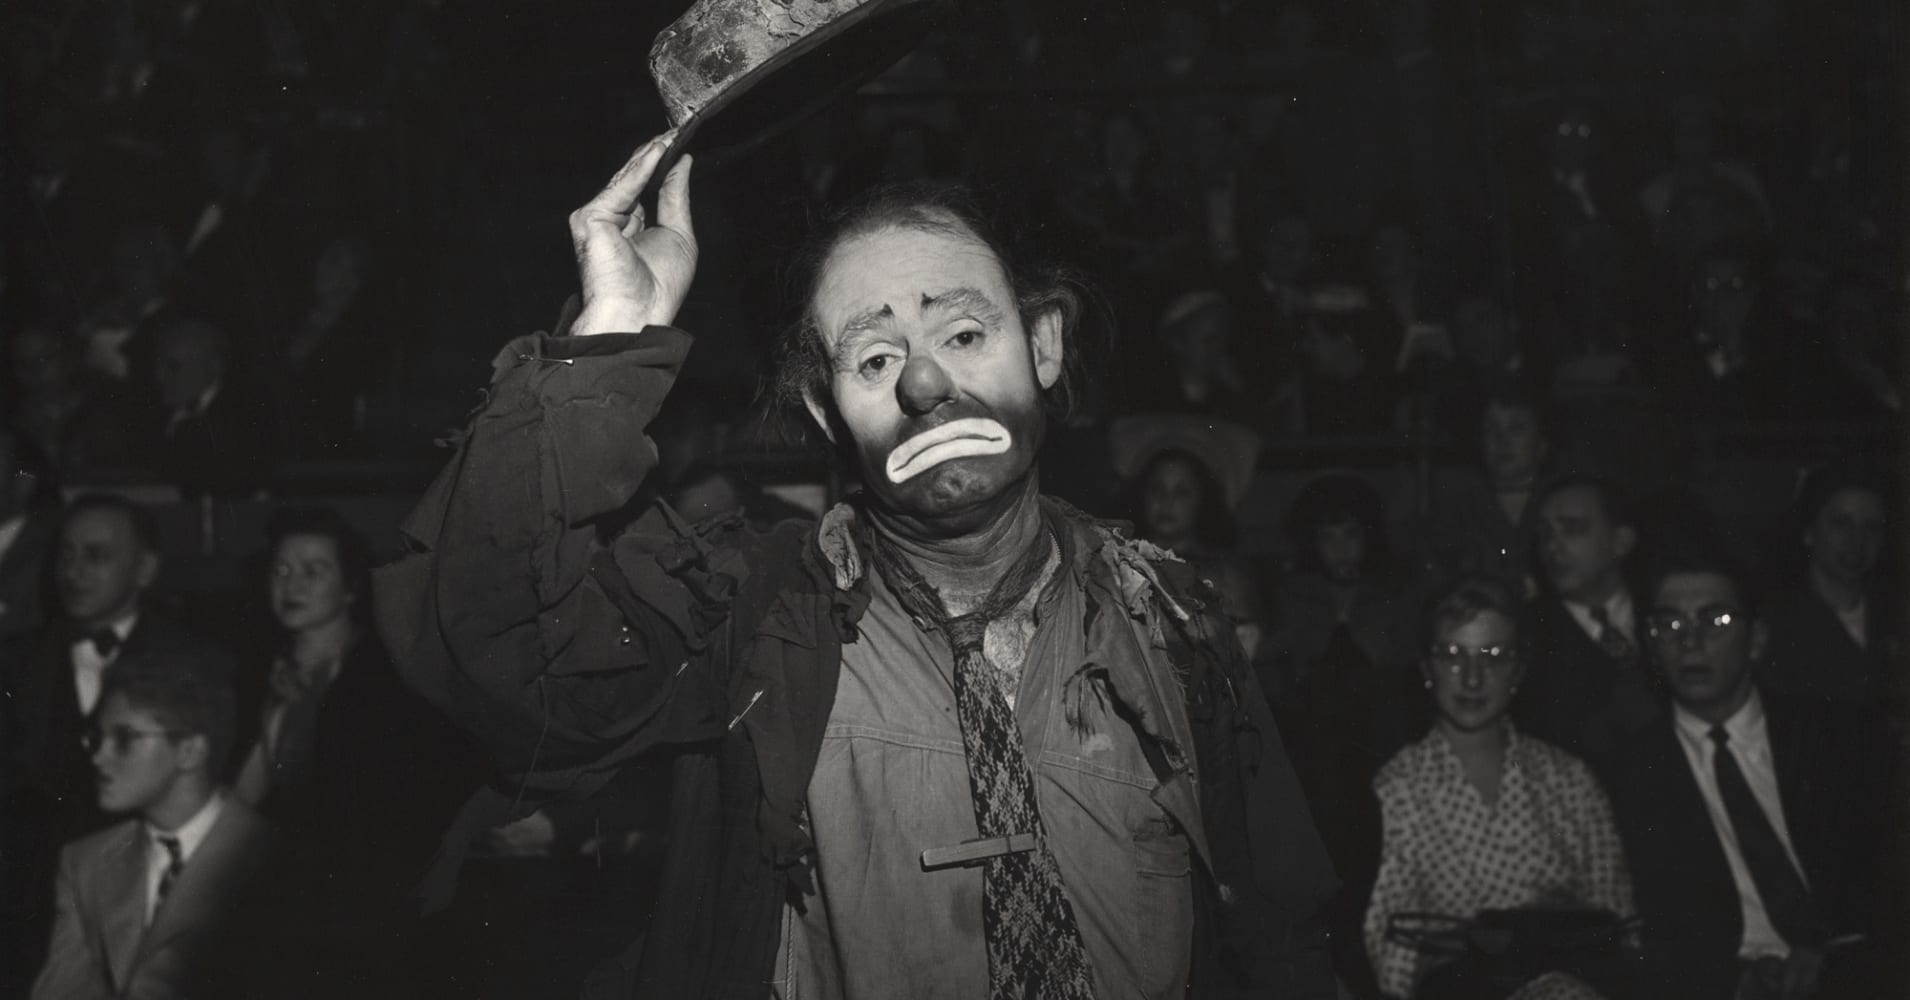 American circus performer Emmett Kelly in character as the clown Weary Willie in 1943